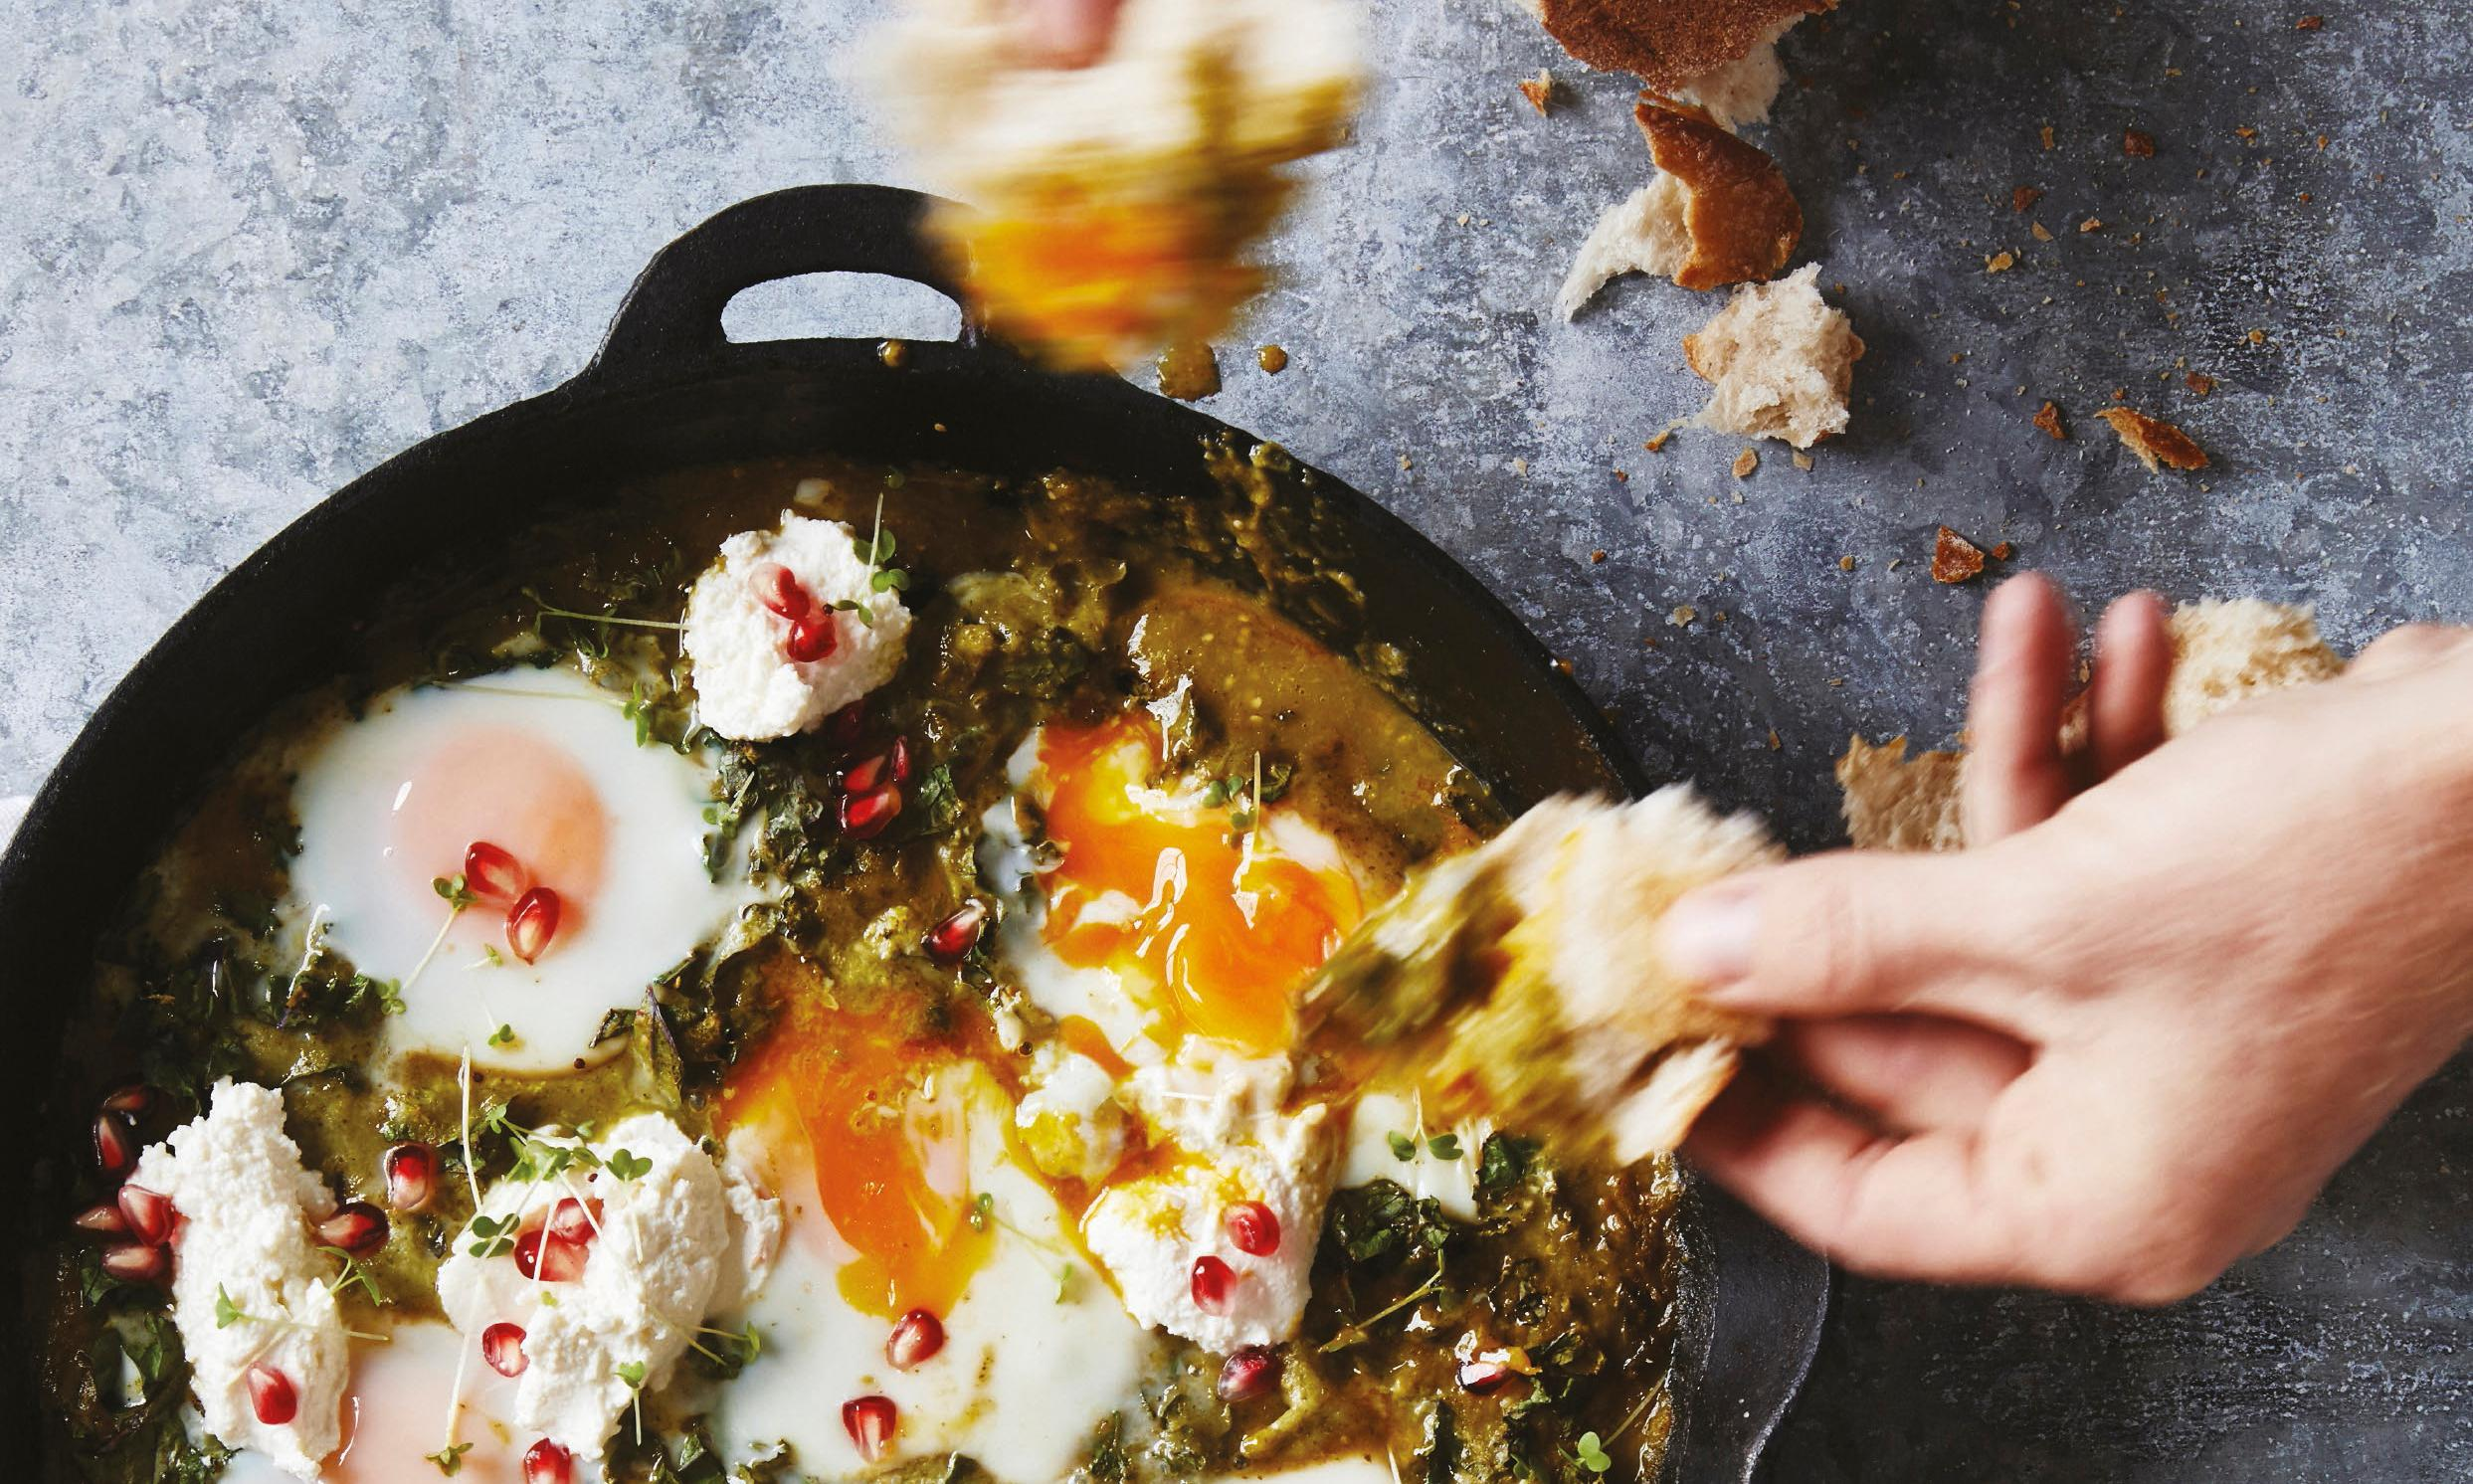 Bondi Harvest's Mexican salsa verde eggs recipe